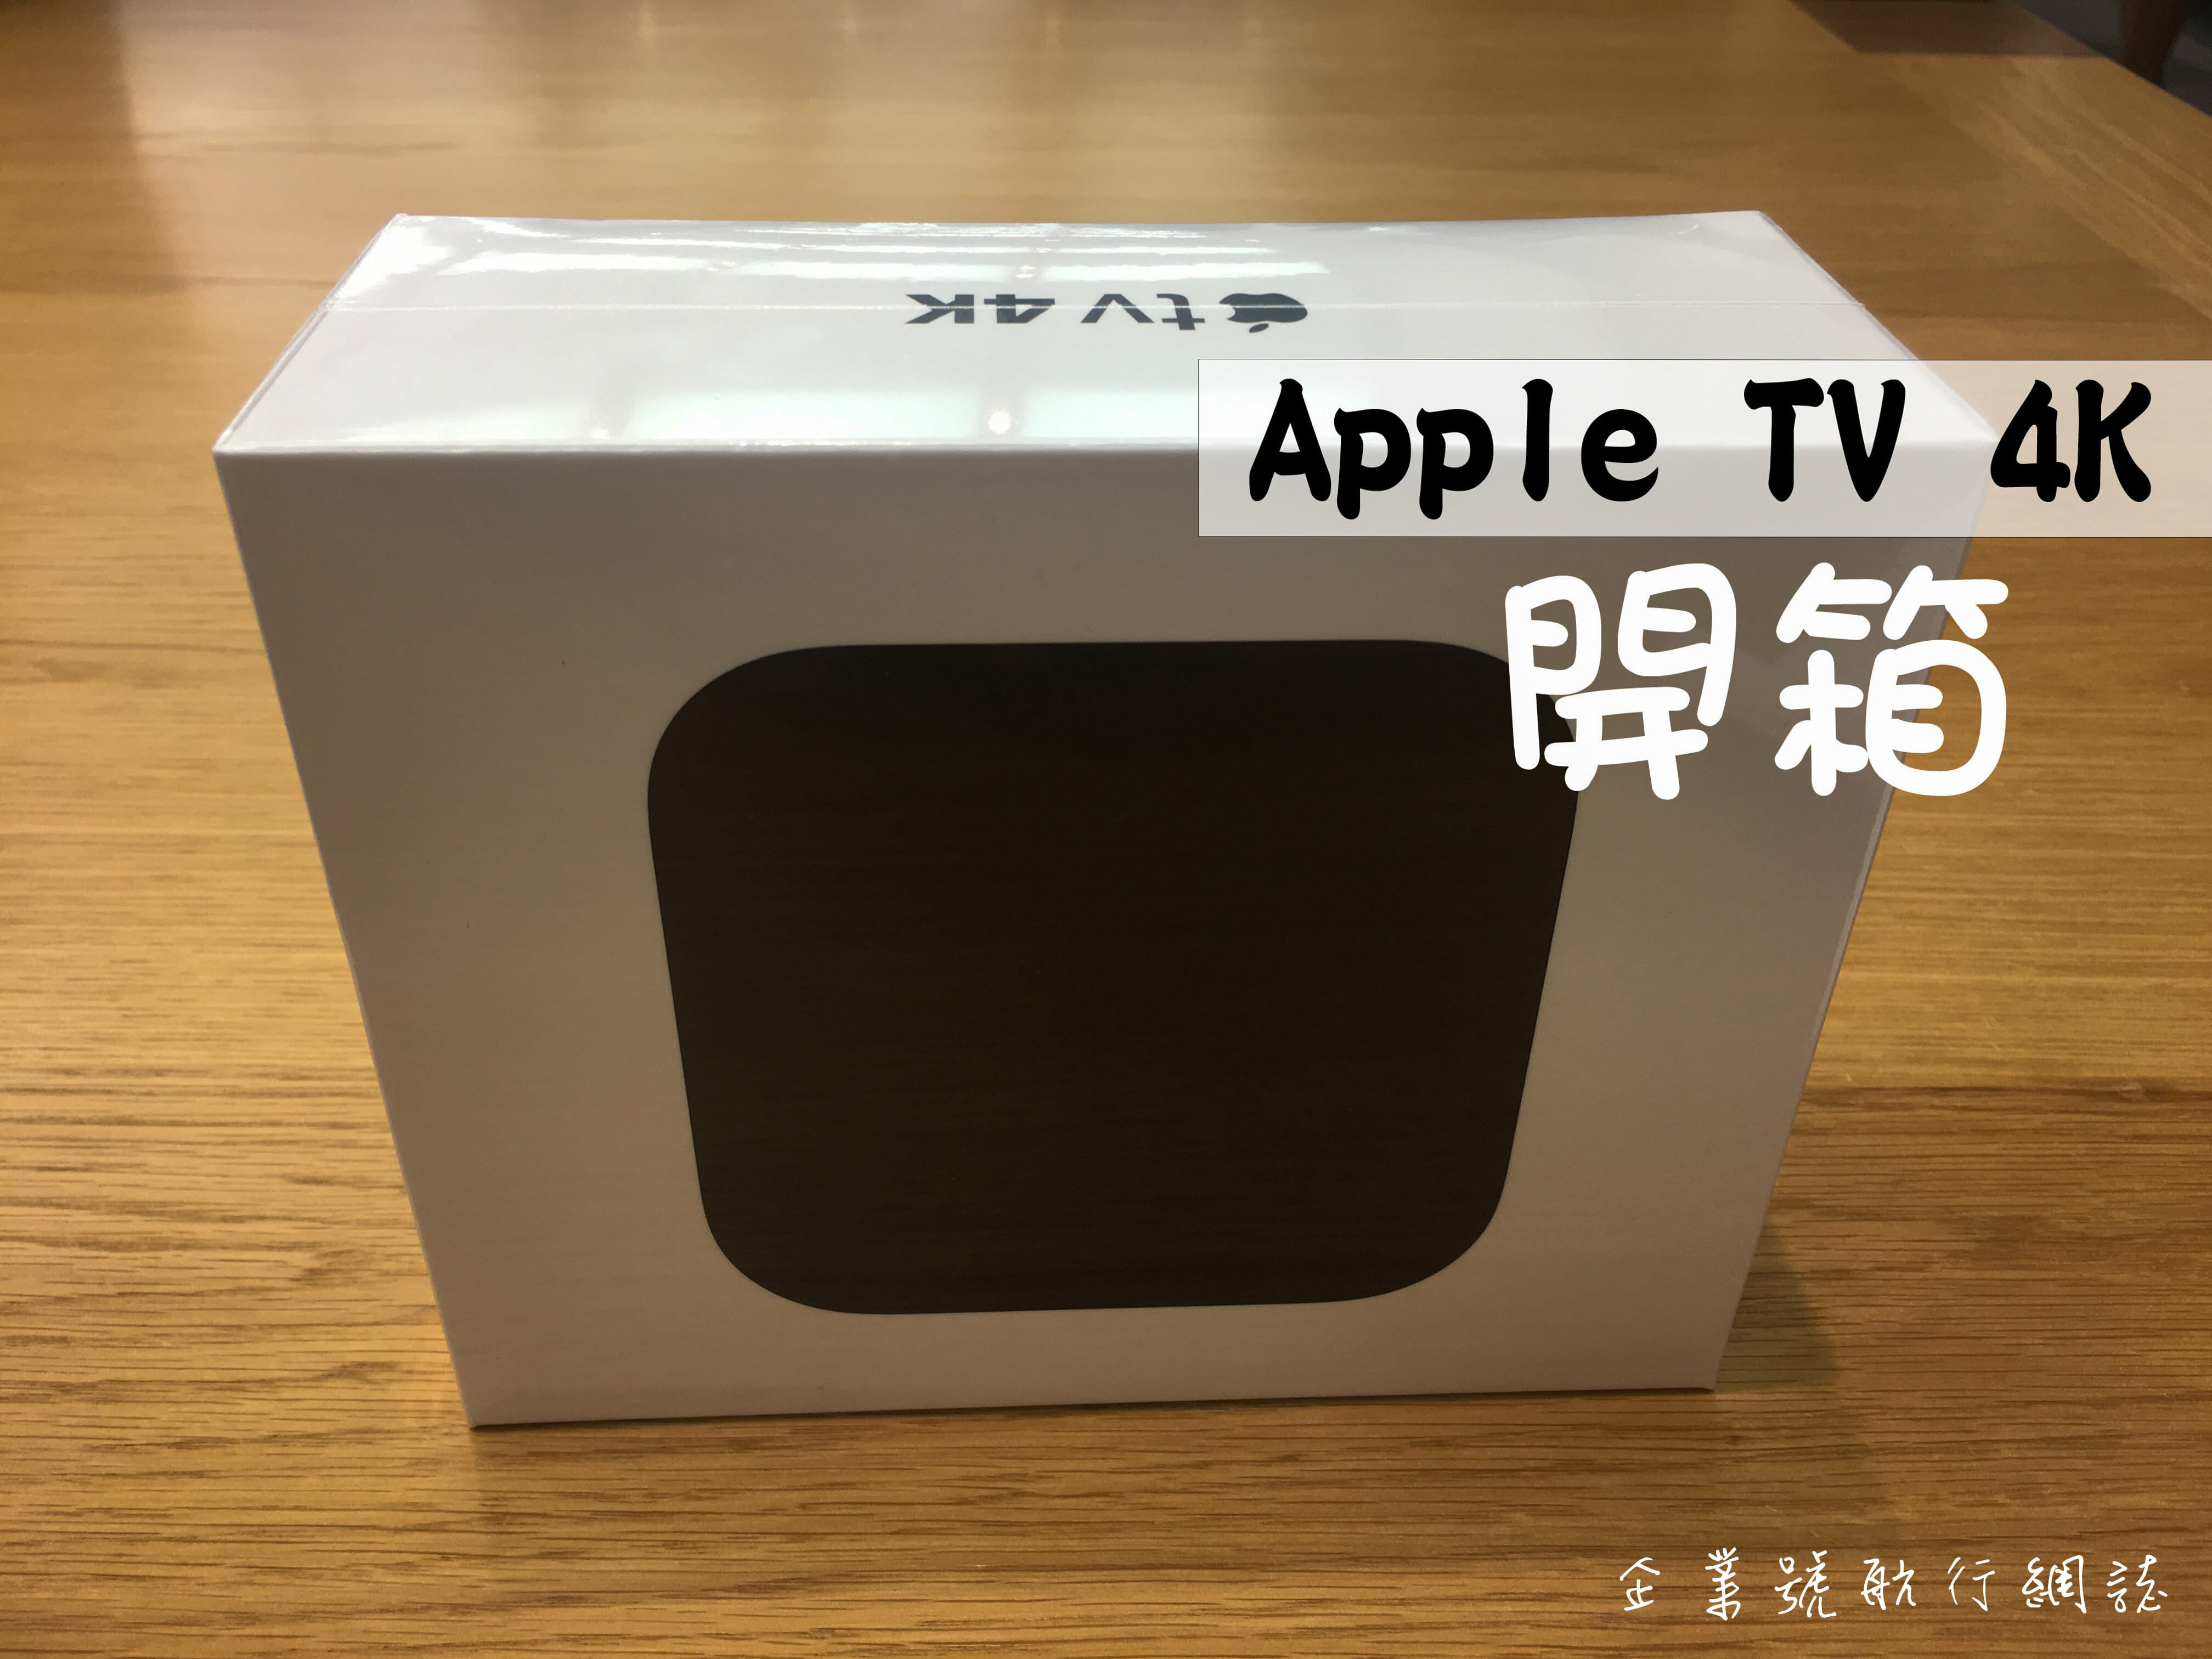 【開箱文】Apple TV 4K